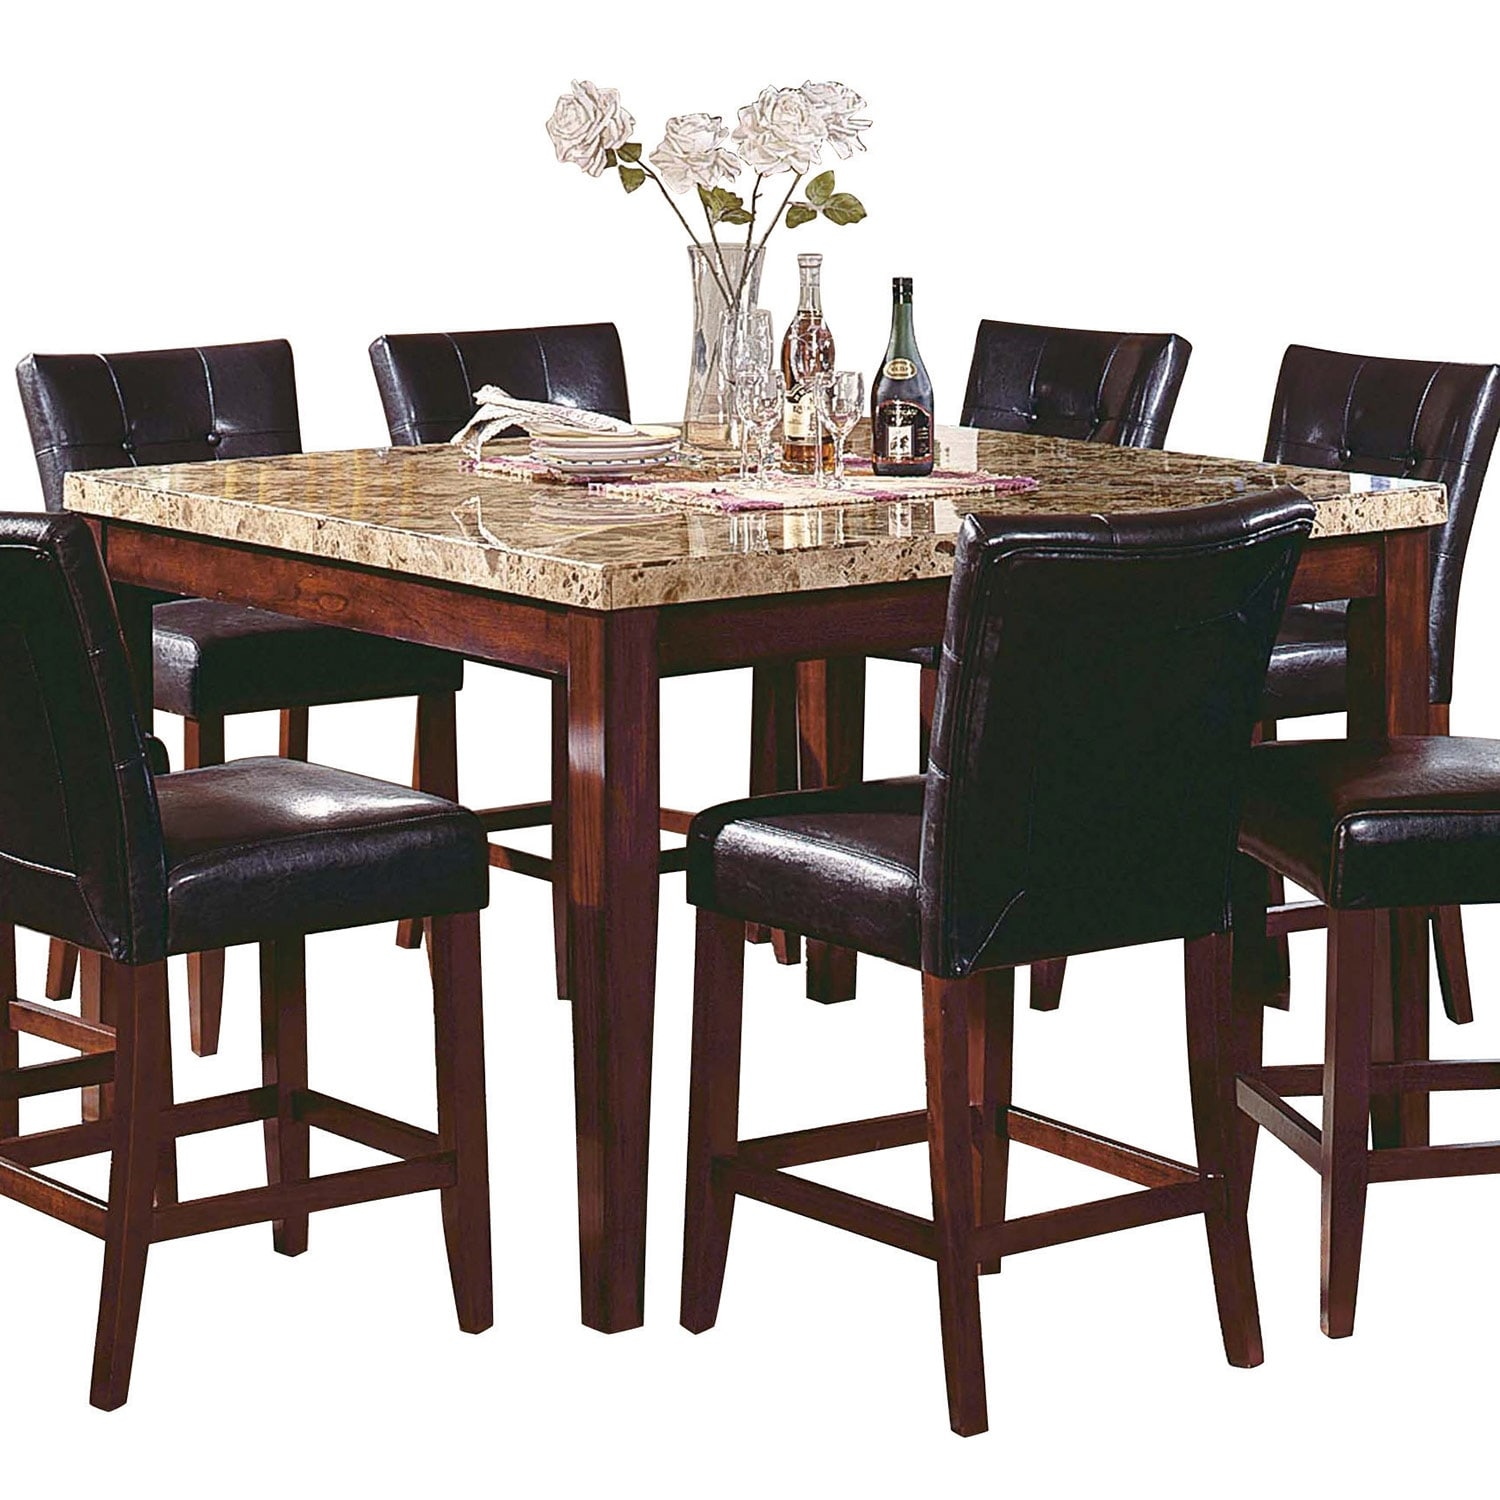 Dining Room Furniture - Montibello Counter-Height Dining Table